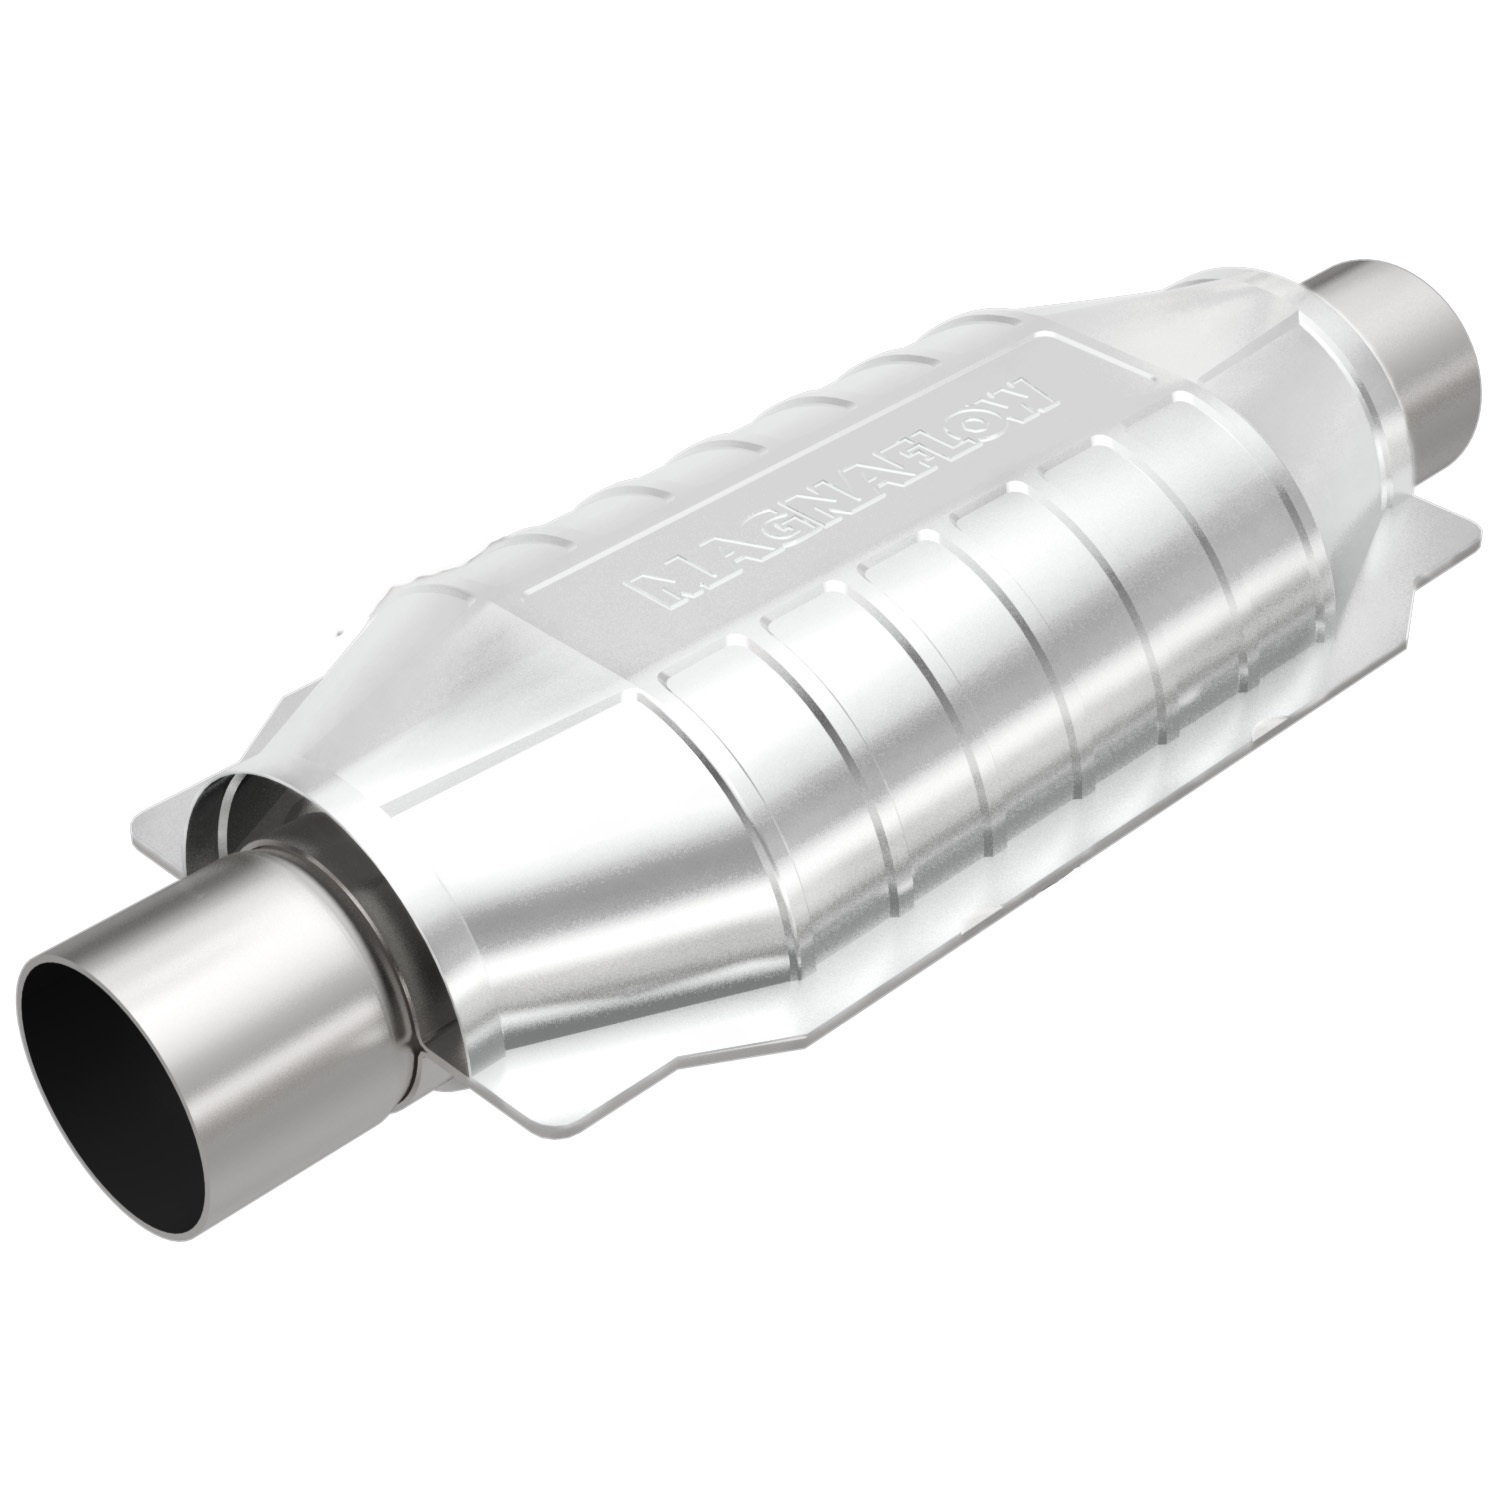 MagnaFlow Exhaust Products Catalytic Converter (34004)